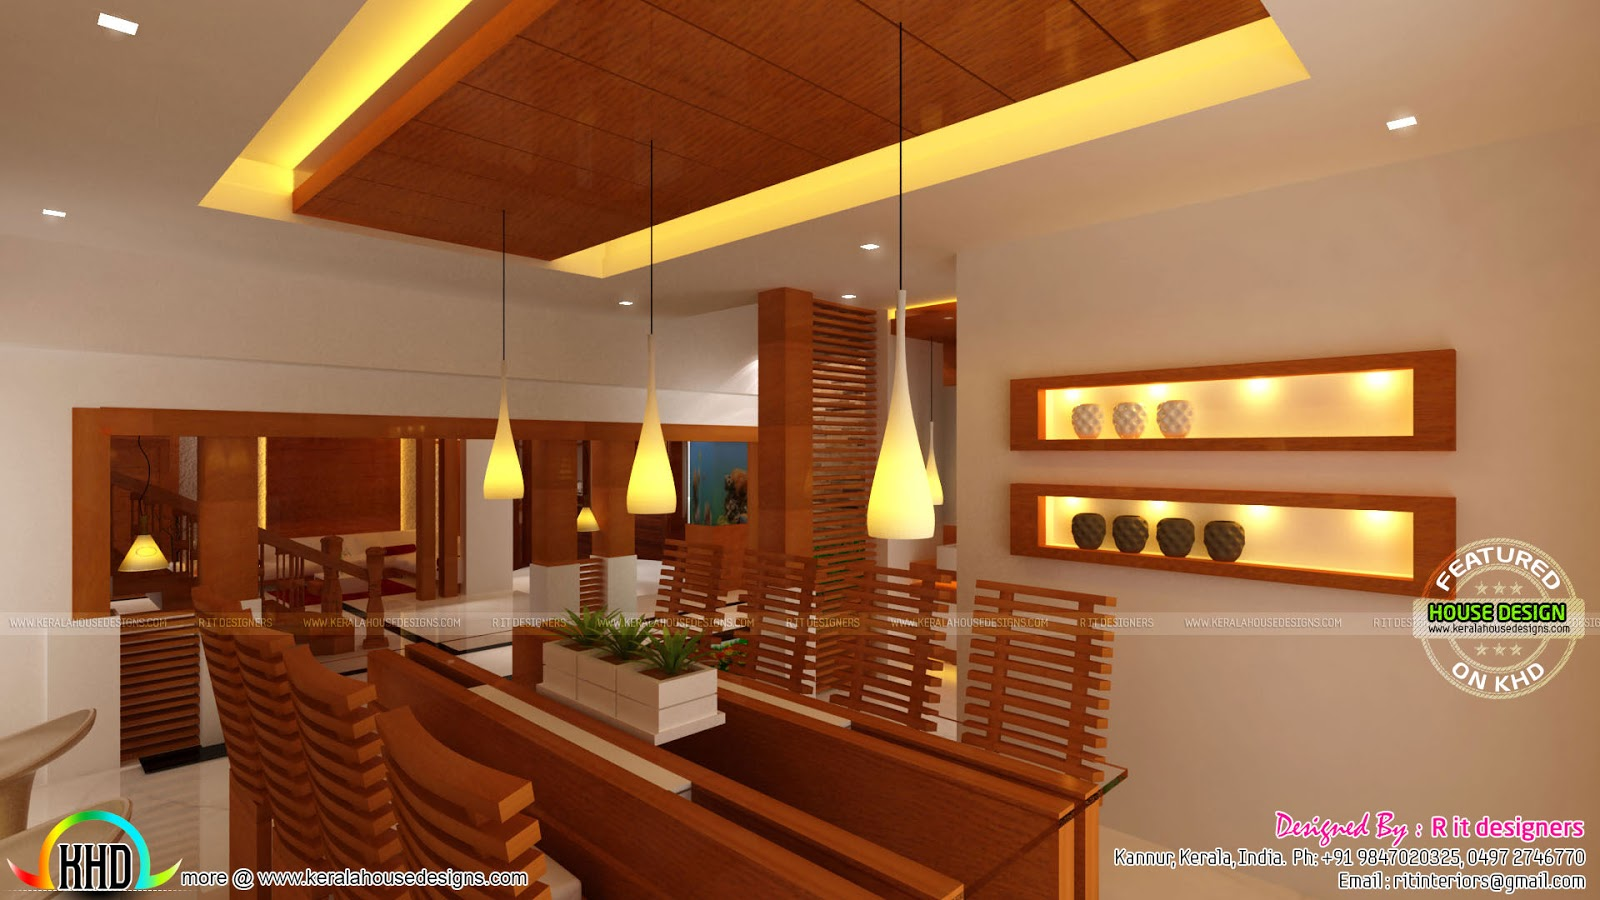 wooden-interior-dining.jpg